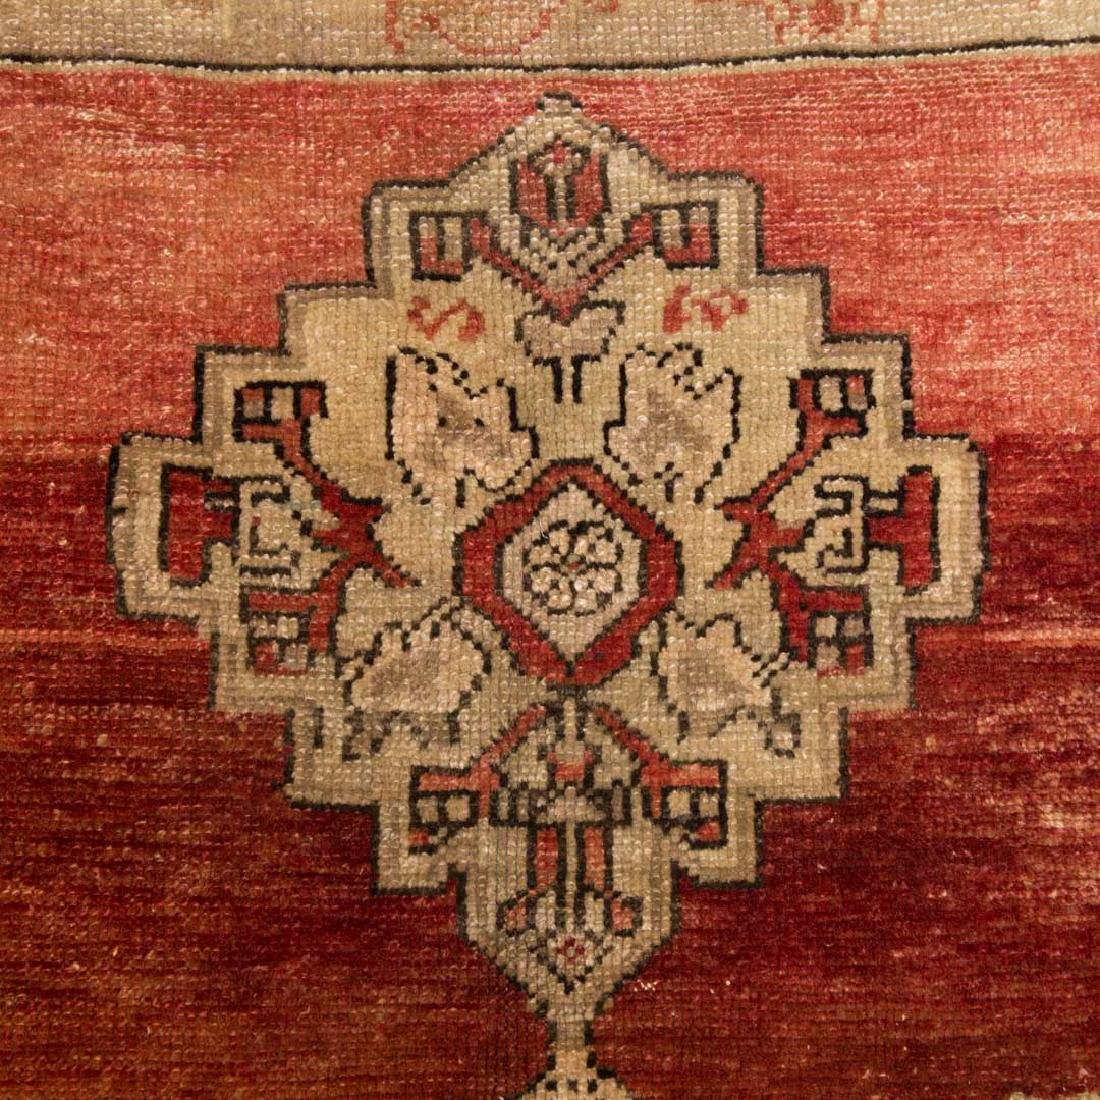 Antique Oushak rug, approx. 4.6 x 6.8 - 4